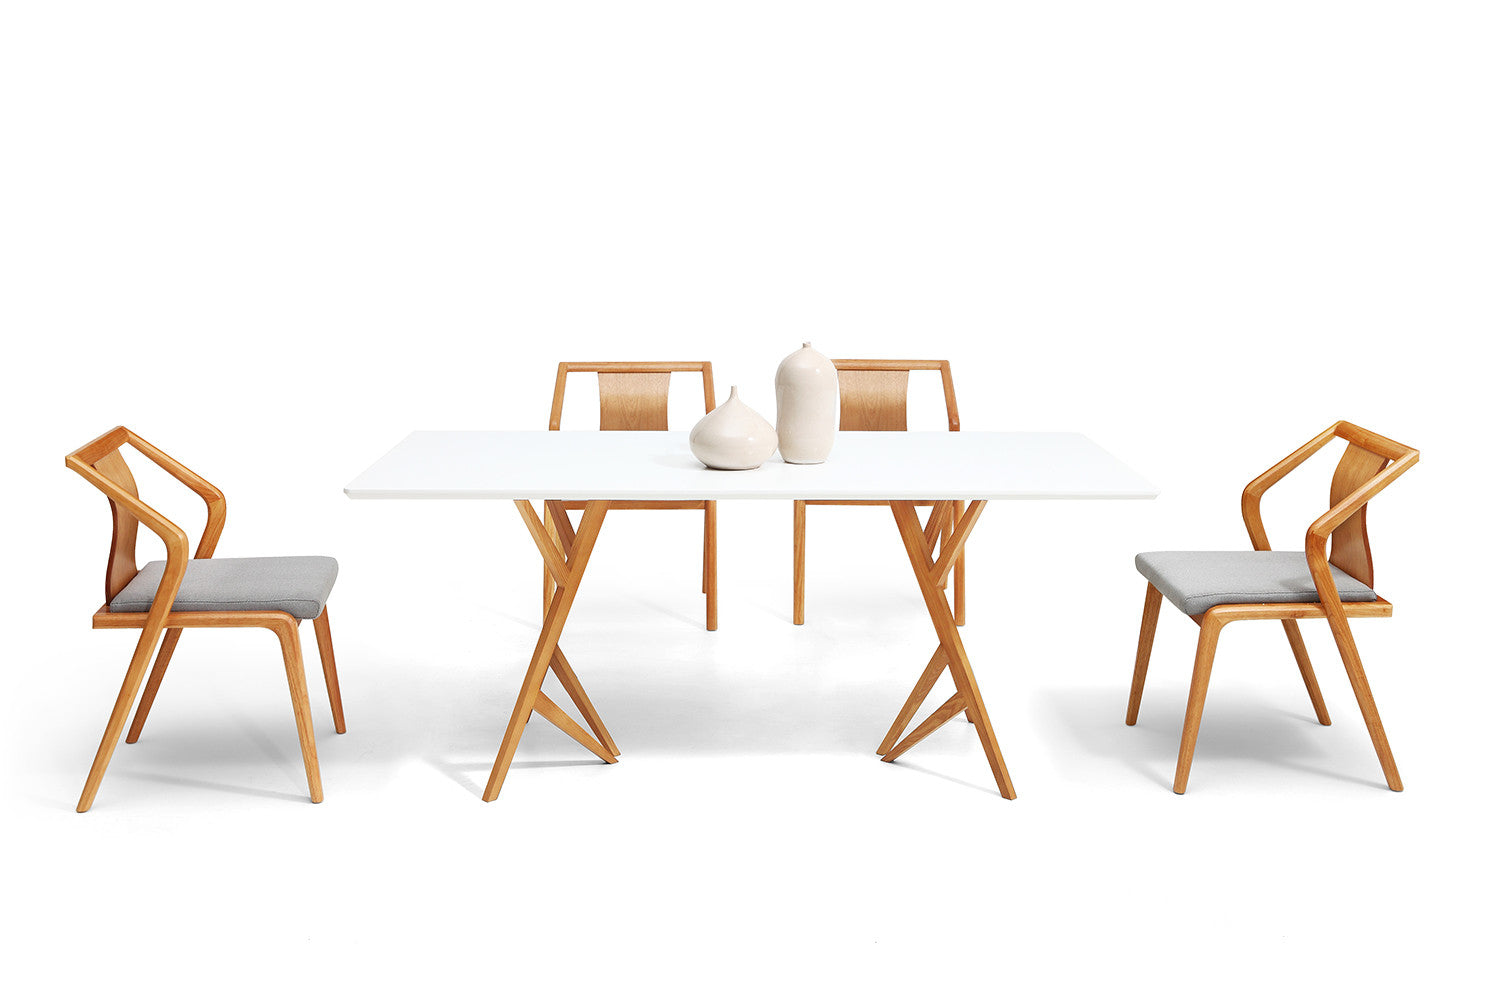 Table de salle manger design scandinave vispa dewarens for Table salle a manger design modulable